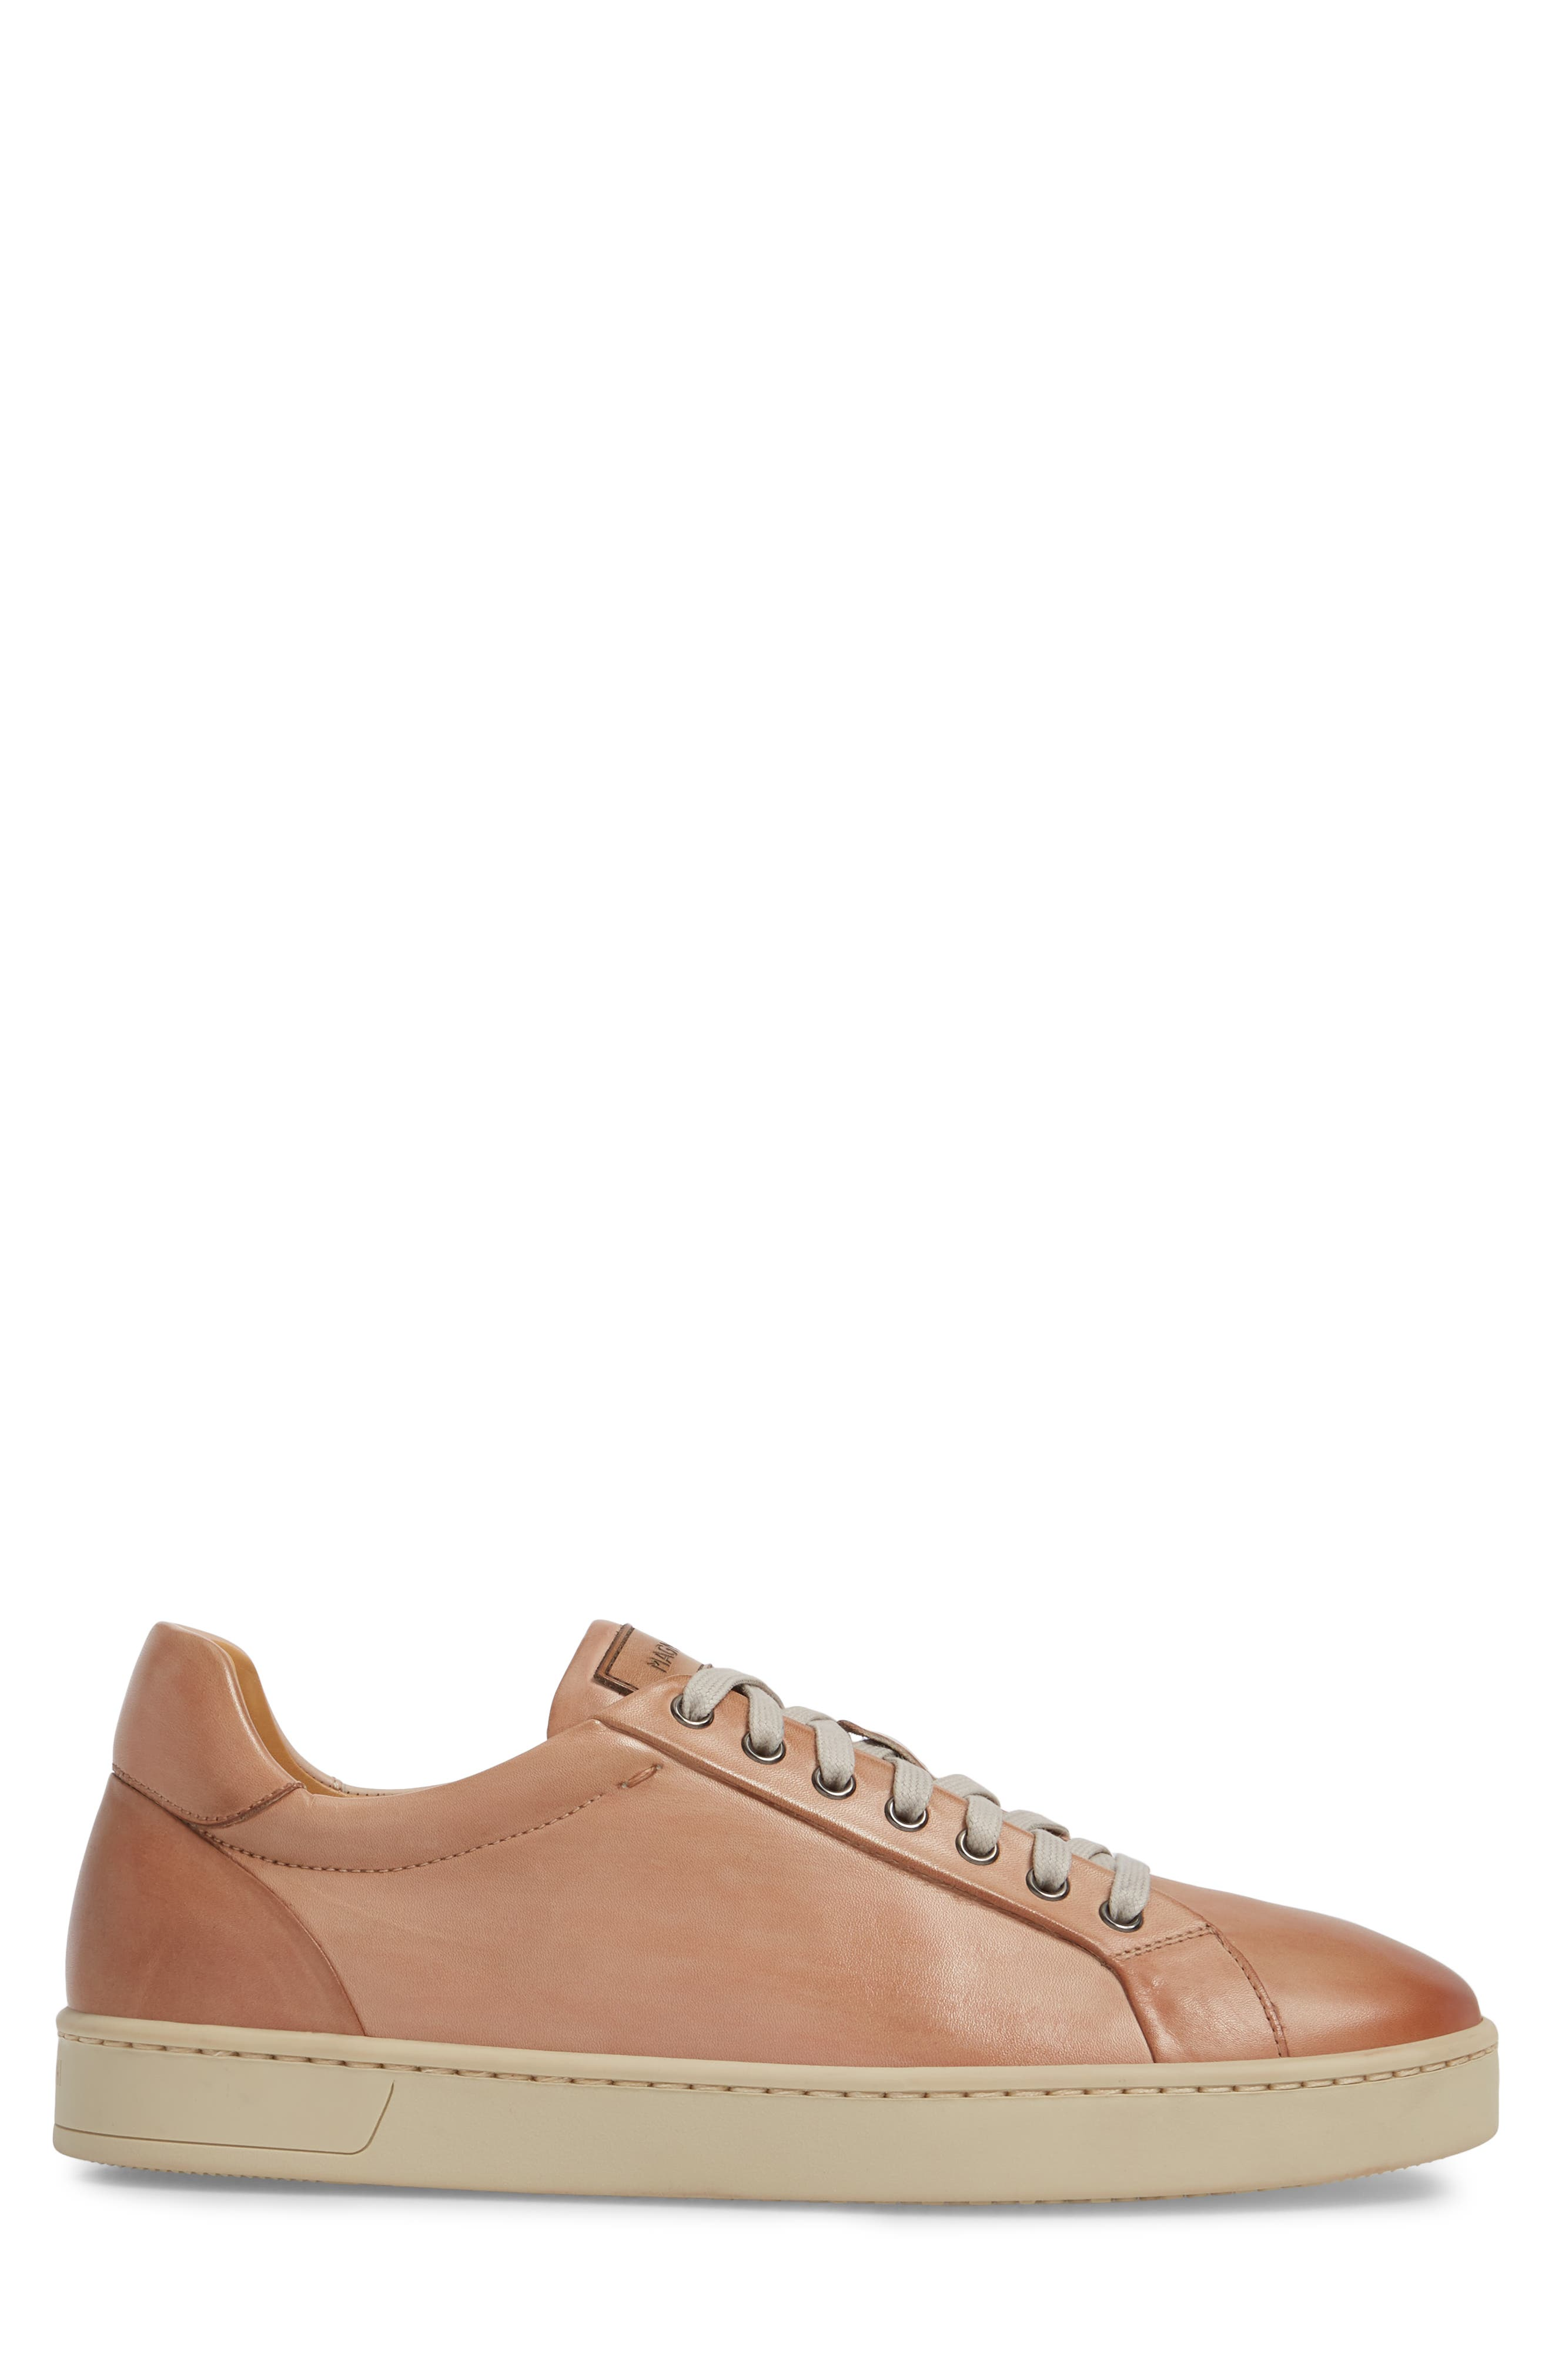 Elonso Low Top Sneaker,                             Alternate thumbnail 3, color,                             Rosa Leather